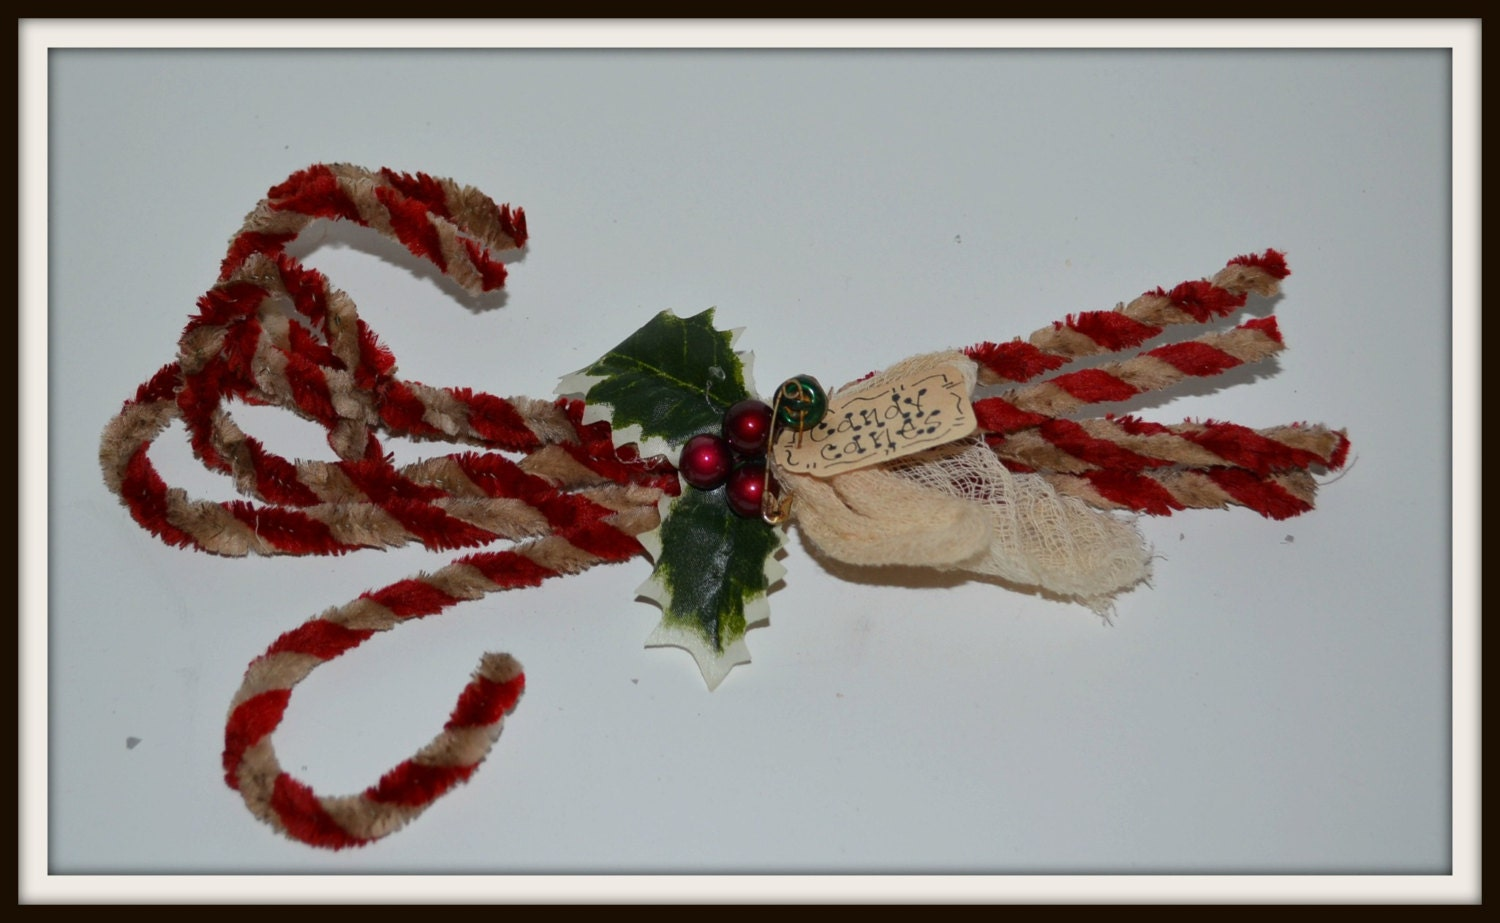 Primitive grungy candy canes, chenille candy canes, holiday candy canes, handmade candy canes